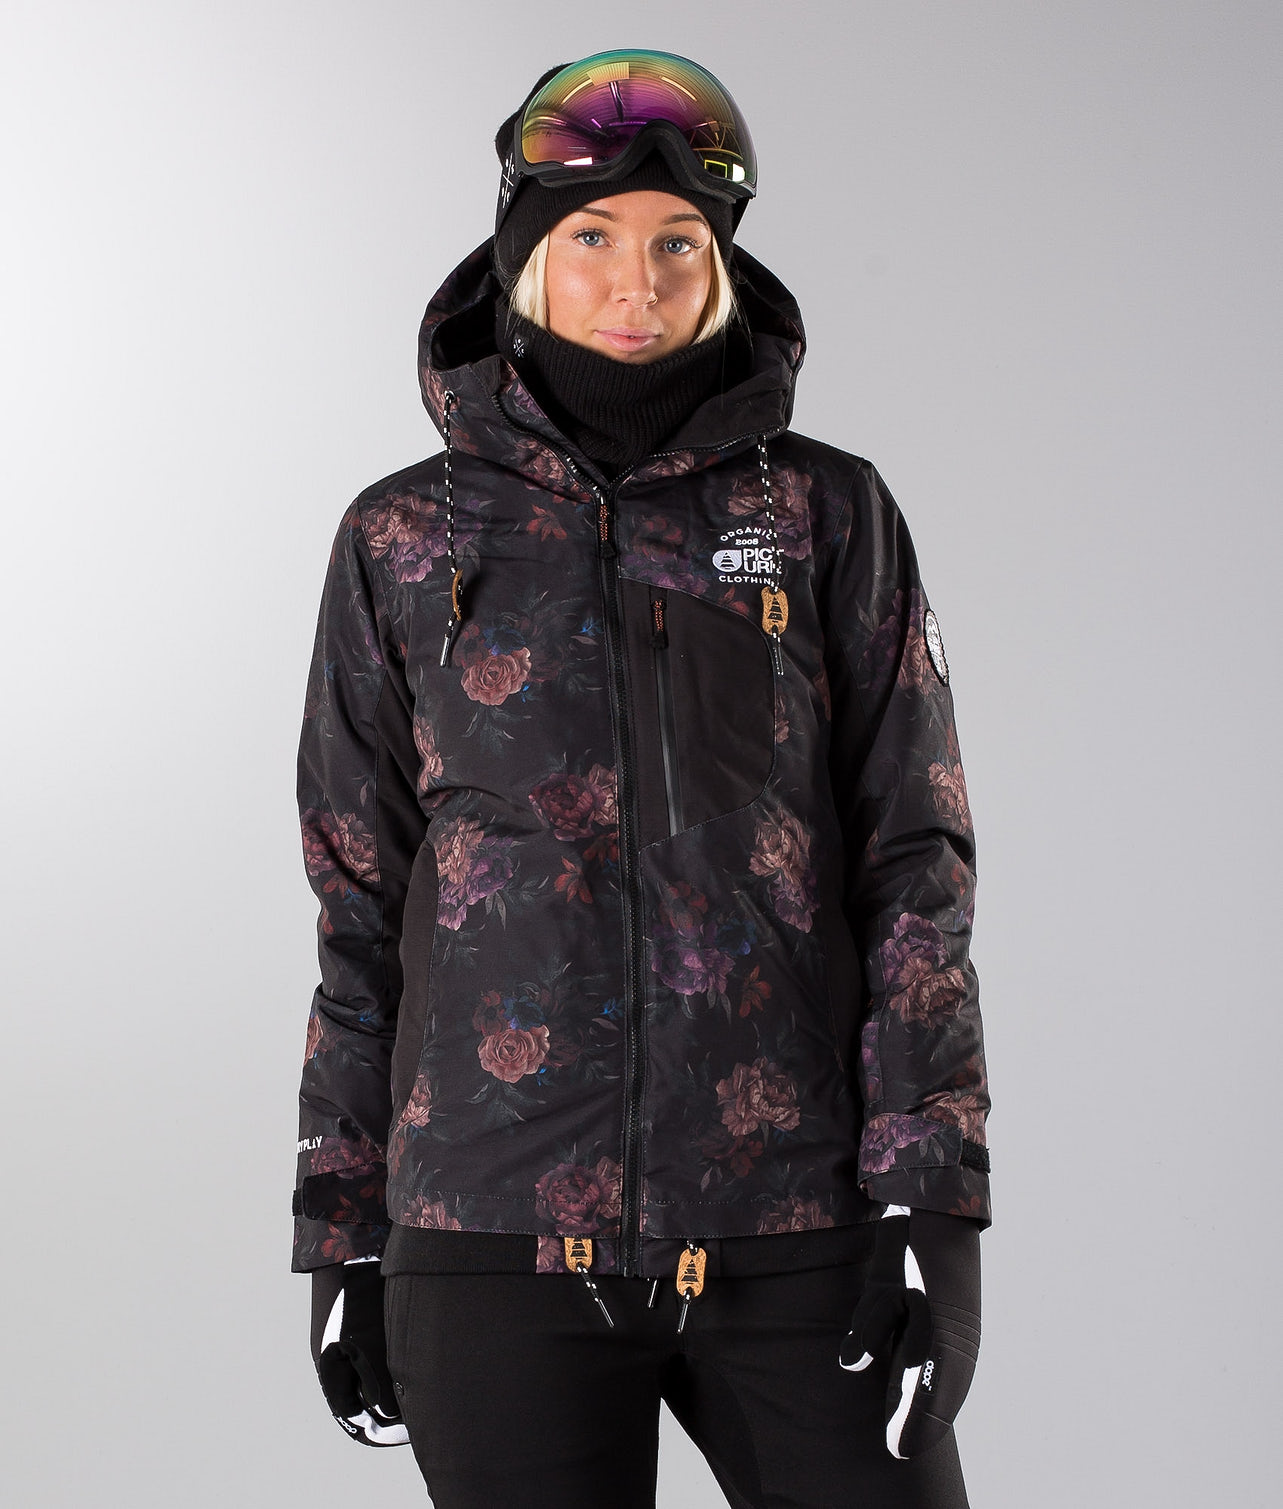 Buy Milk Snowboard Jacket from Picture at Ridestore.com - Always free shipping, free returns and 30 days money back guarantee